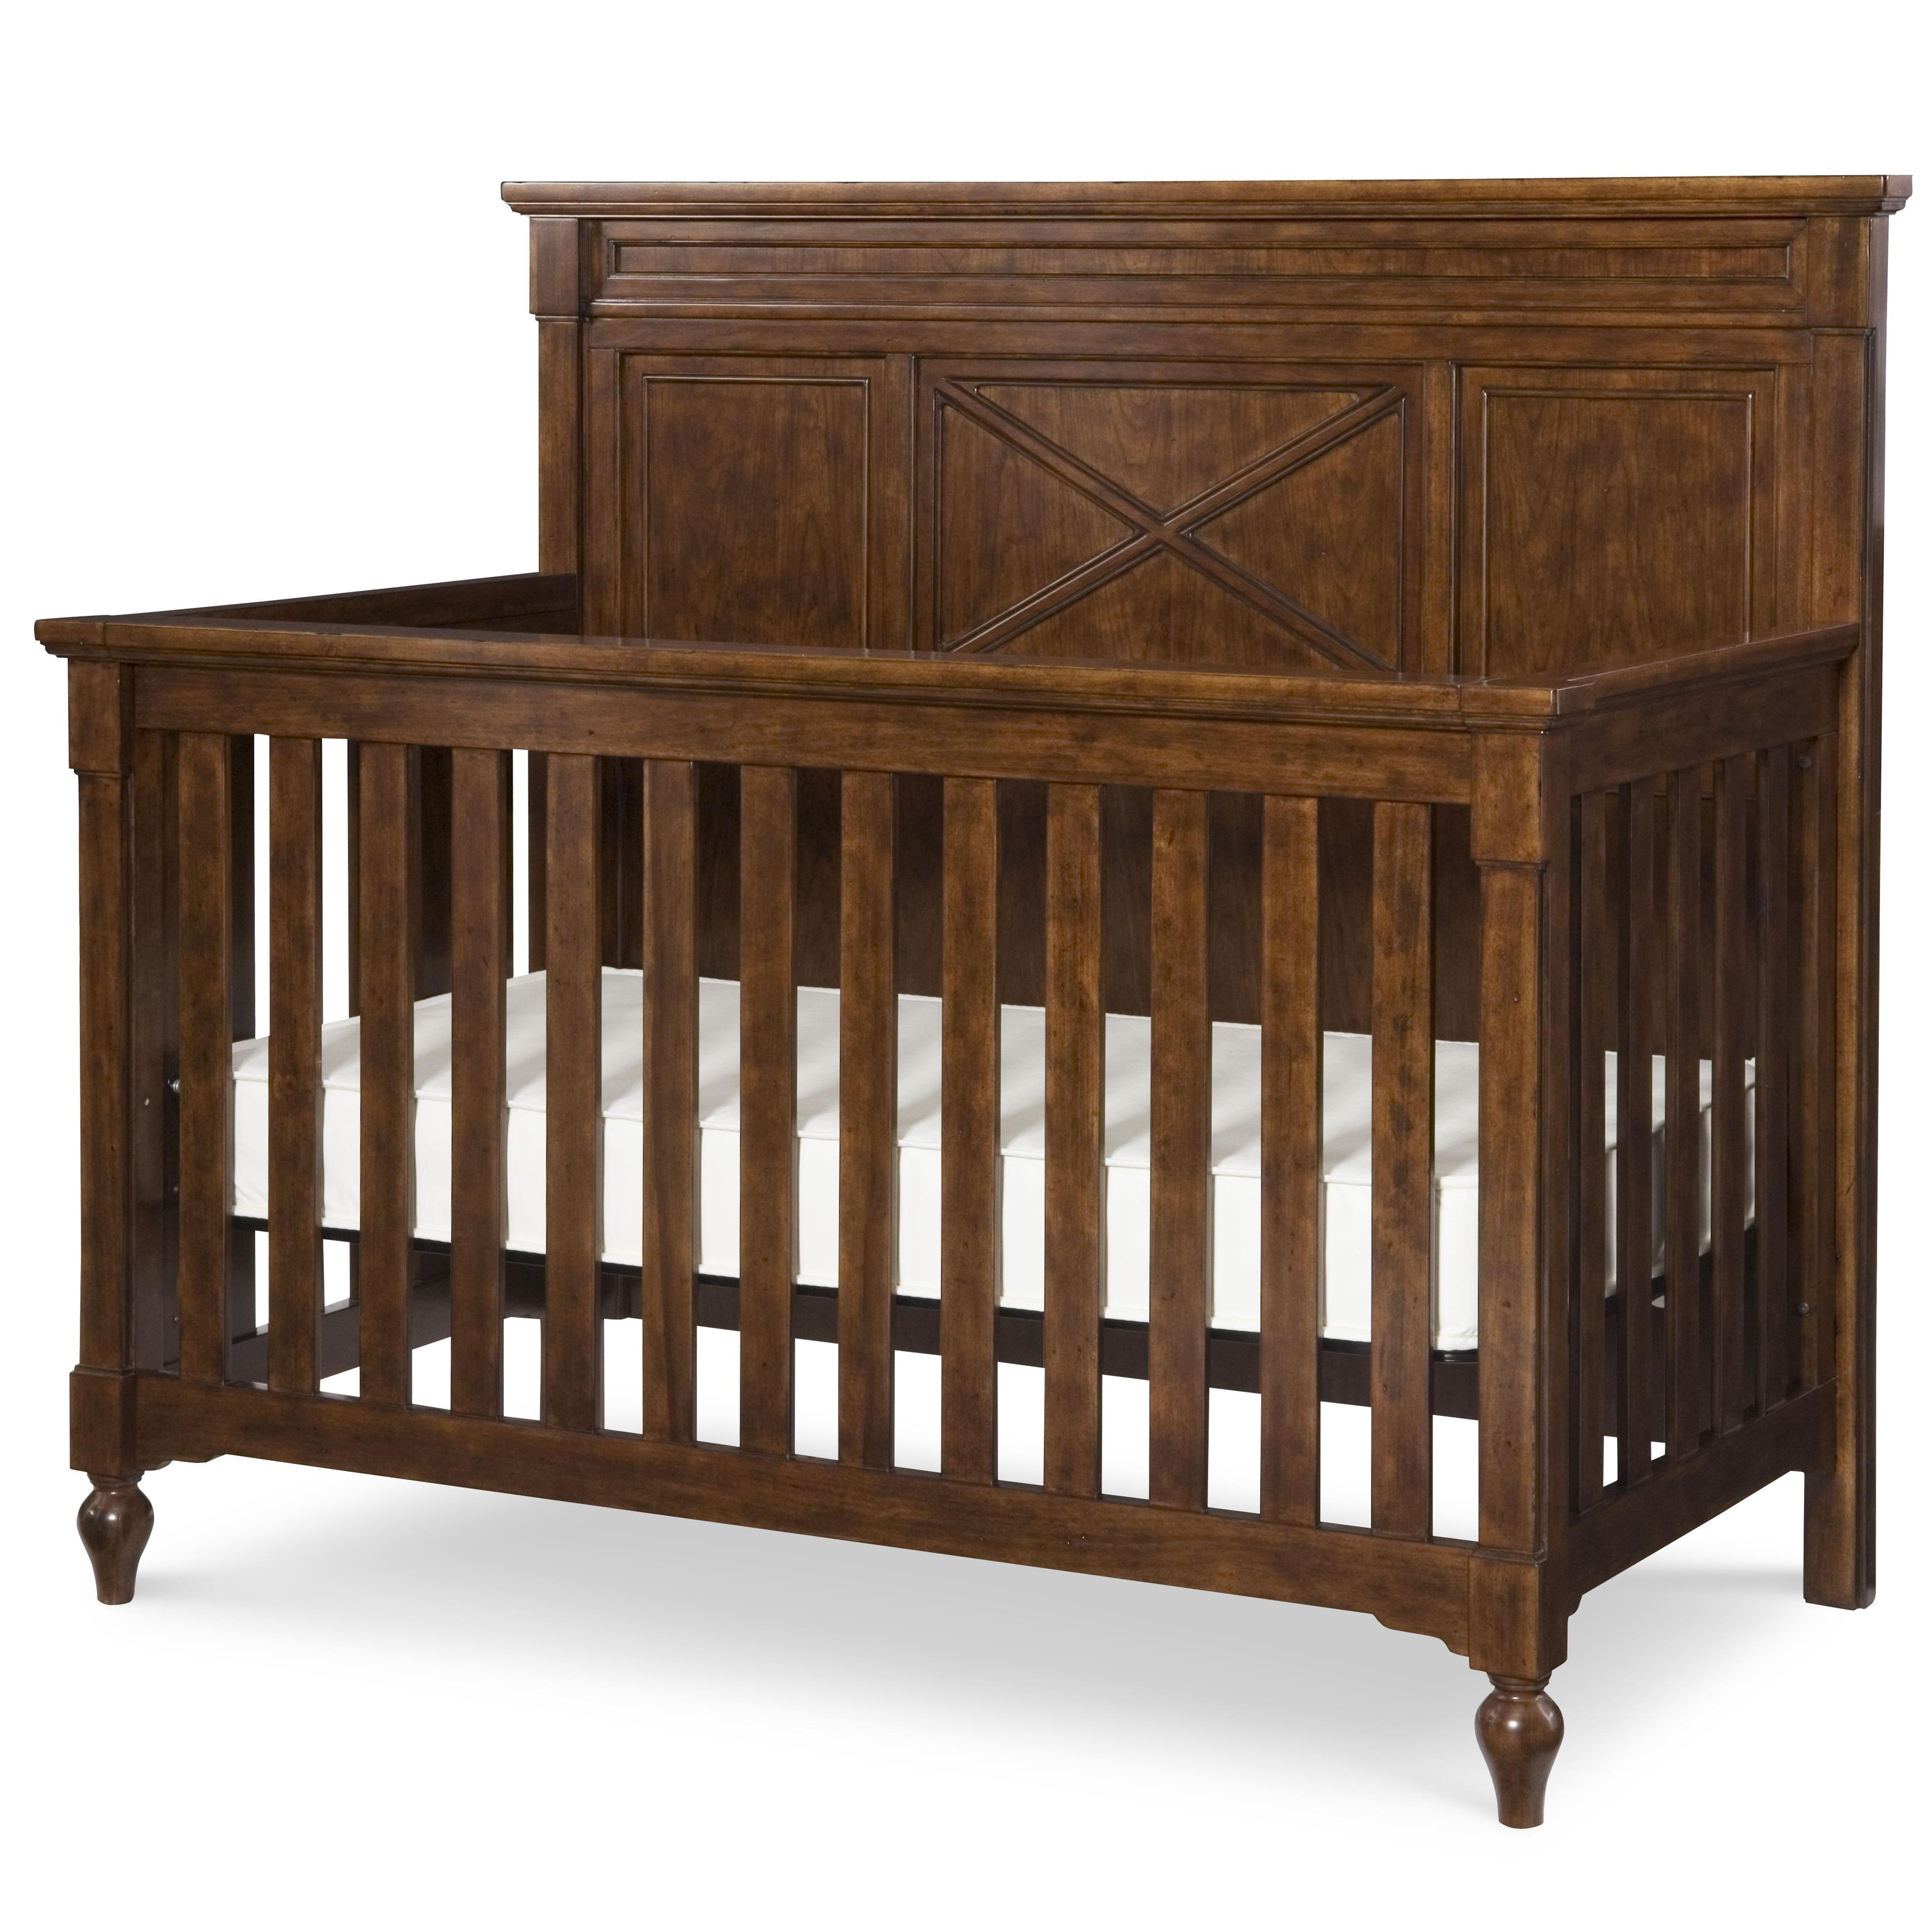 Legacy Classic Kids Big Sur by Wendy Bellissimo Grow with Me Crib - Item Number: 4920-8900+20+30